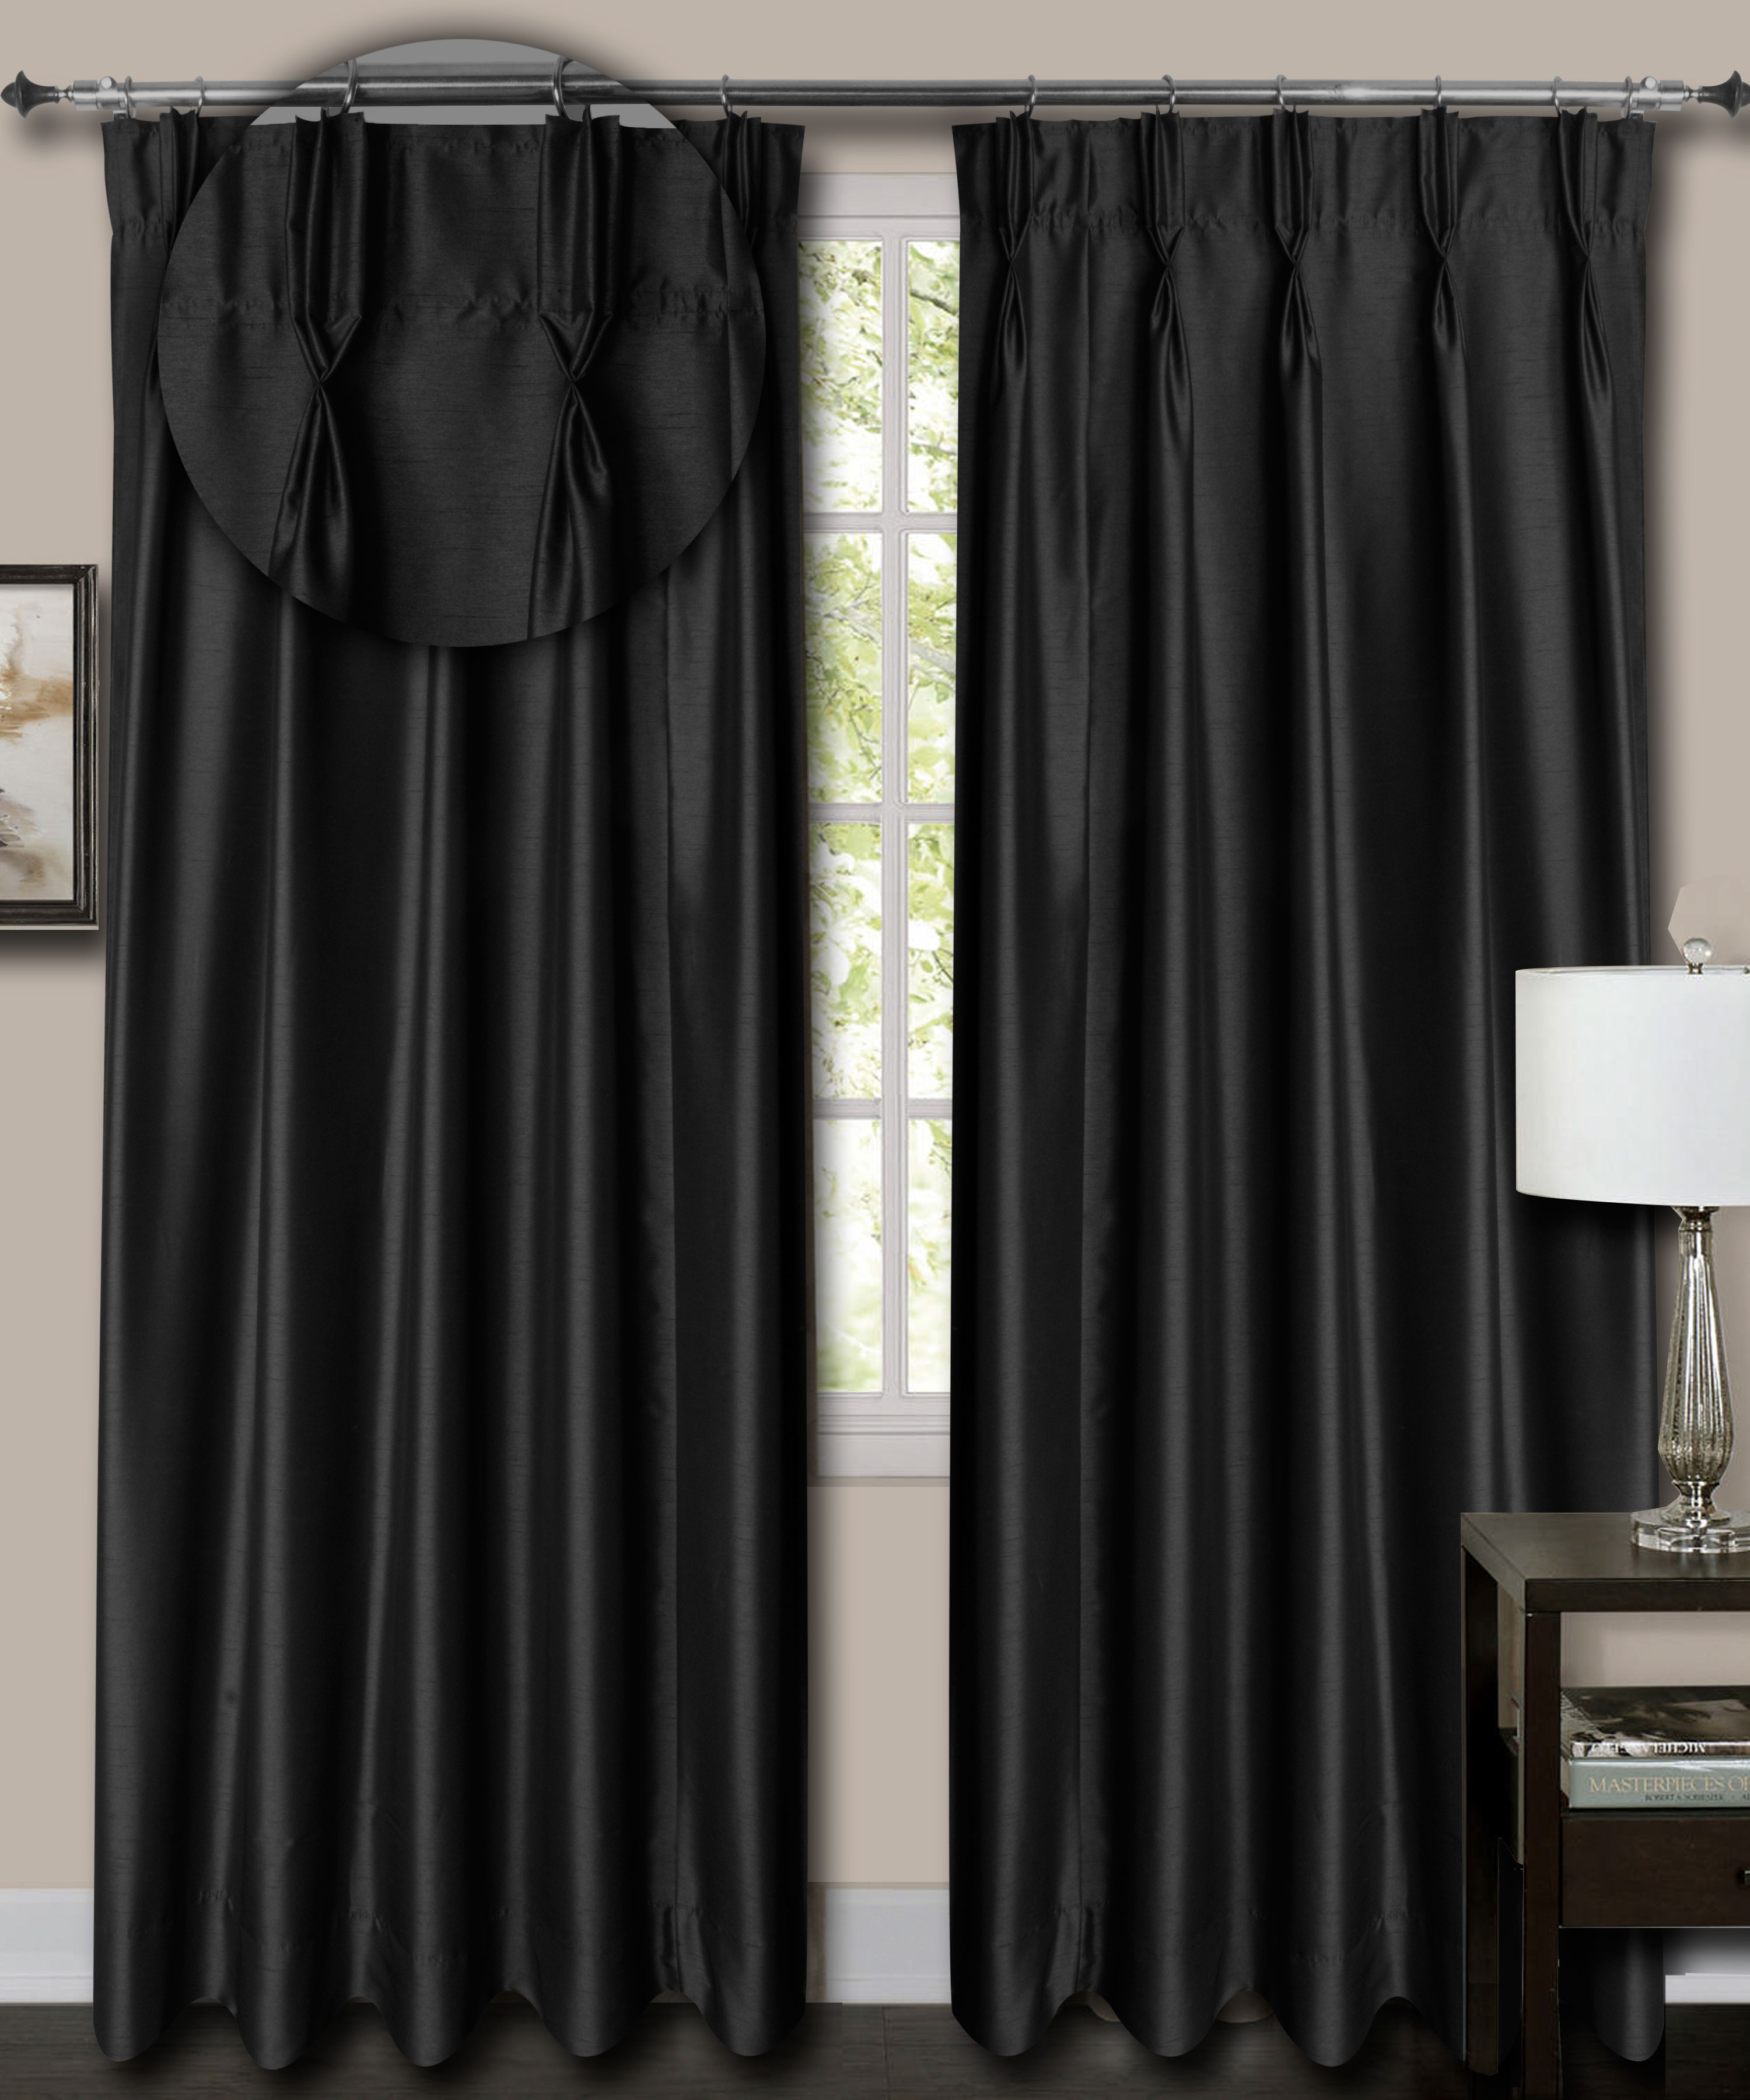 "French Pleat Top Black Faux Silk Dupioni Curtains. (78"" Wide, 5 Feet Long, Without Lining)"